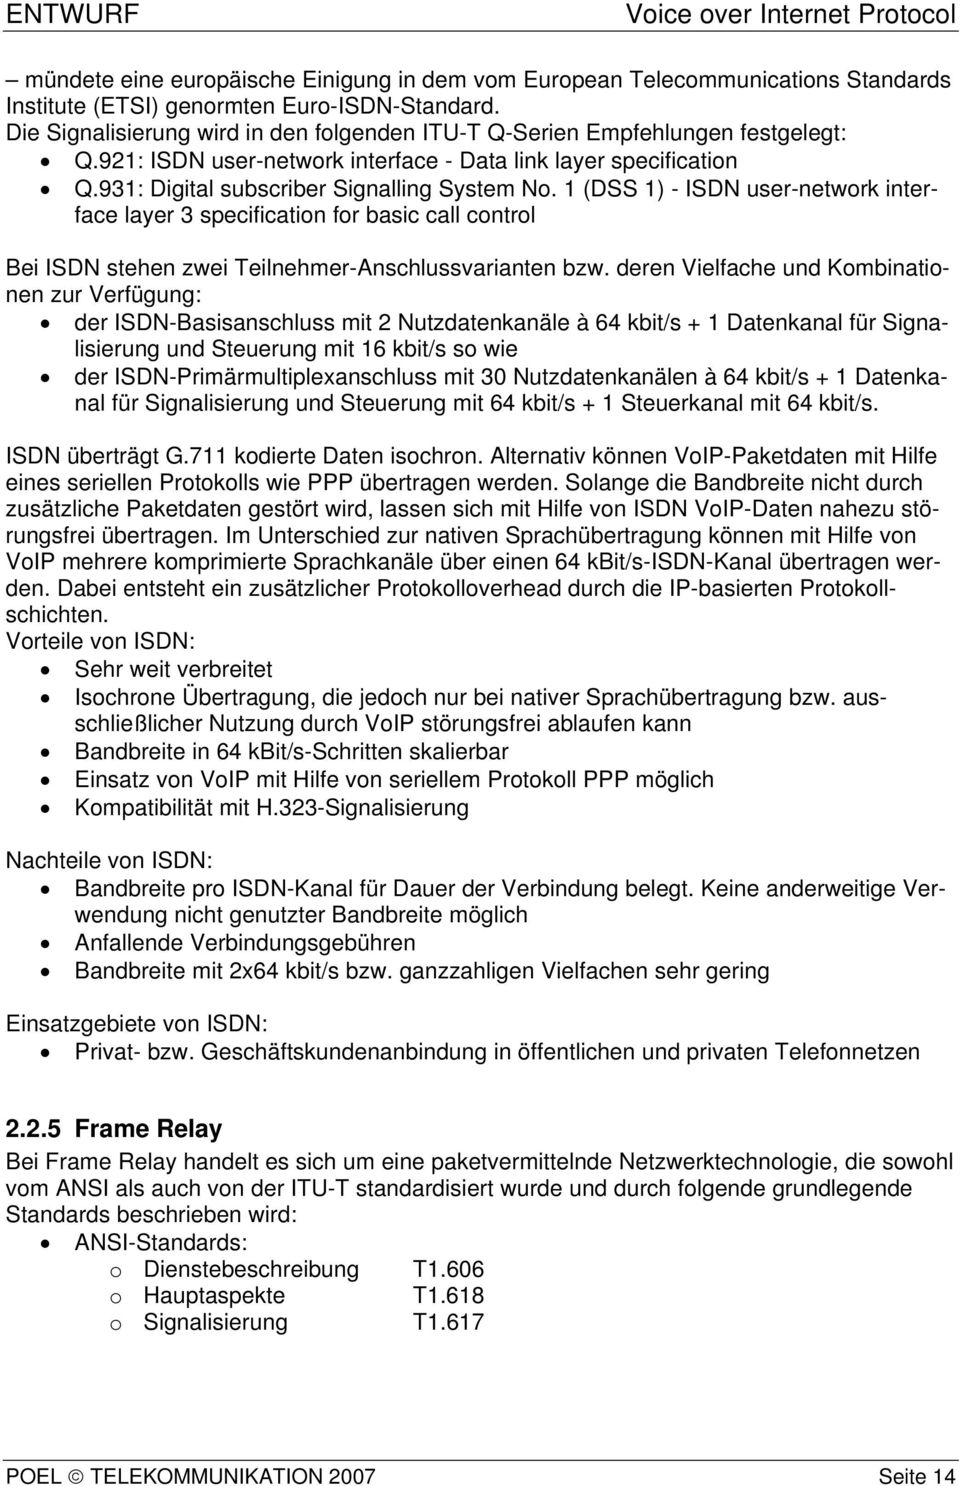 1 (DSS 1) - ISDN user-network interface layer 3 specification for basic call control Bei ISD N stehen zwei Teilnehmer-Anschlussvarianten bzw.